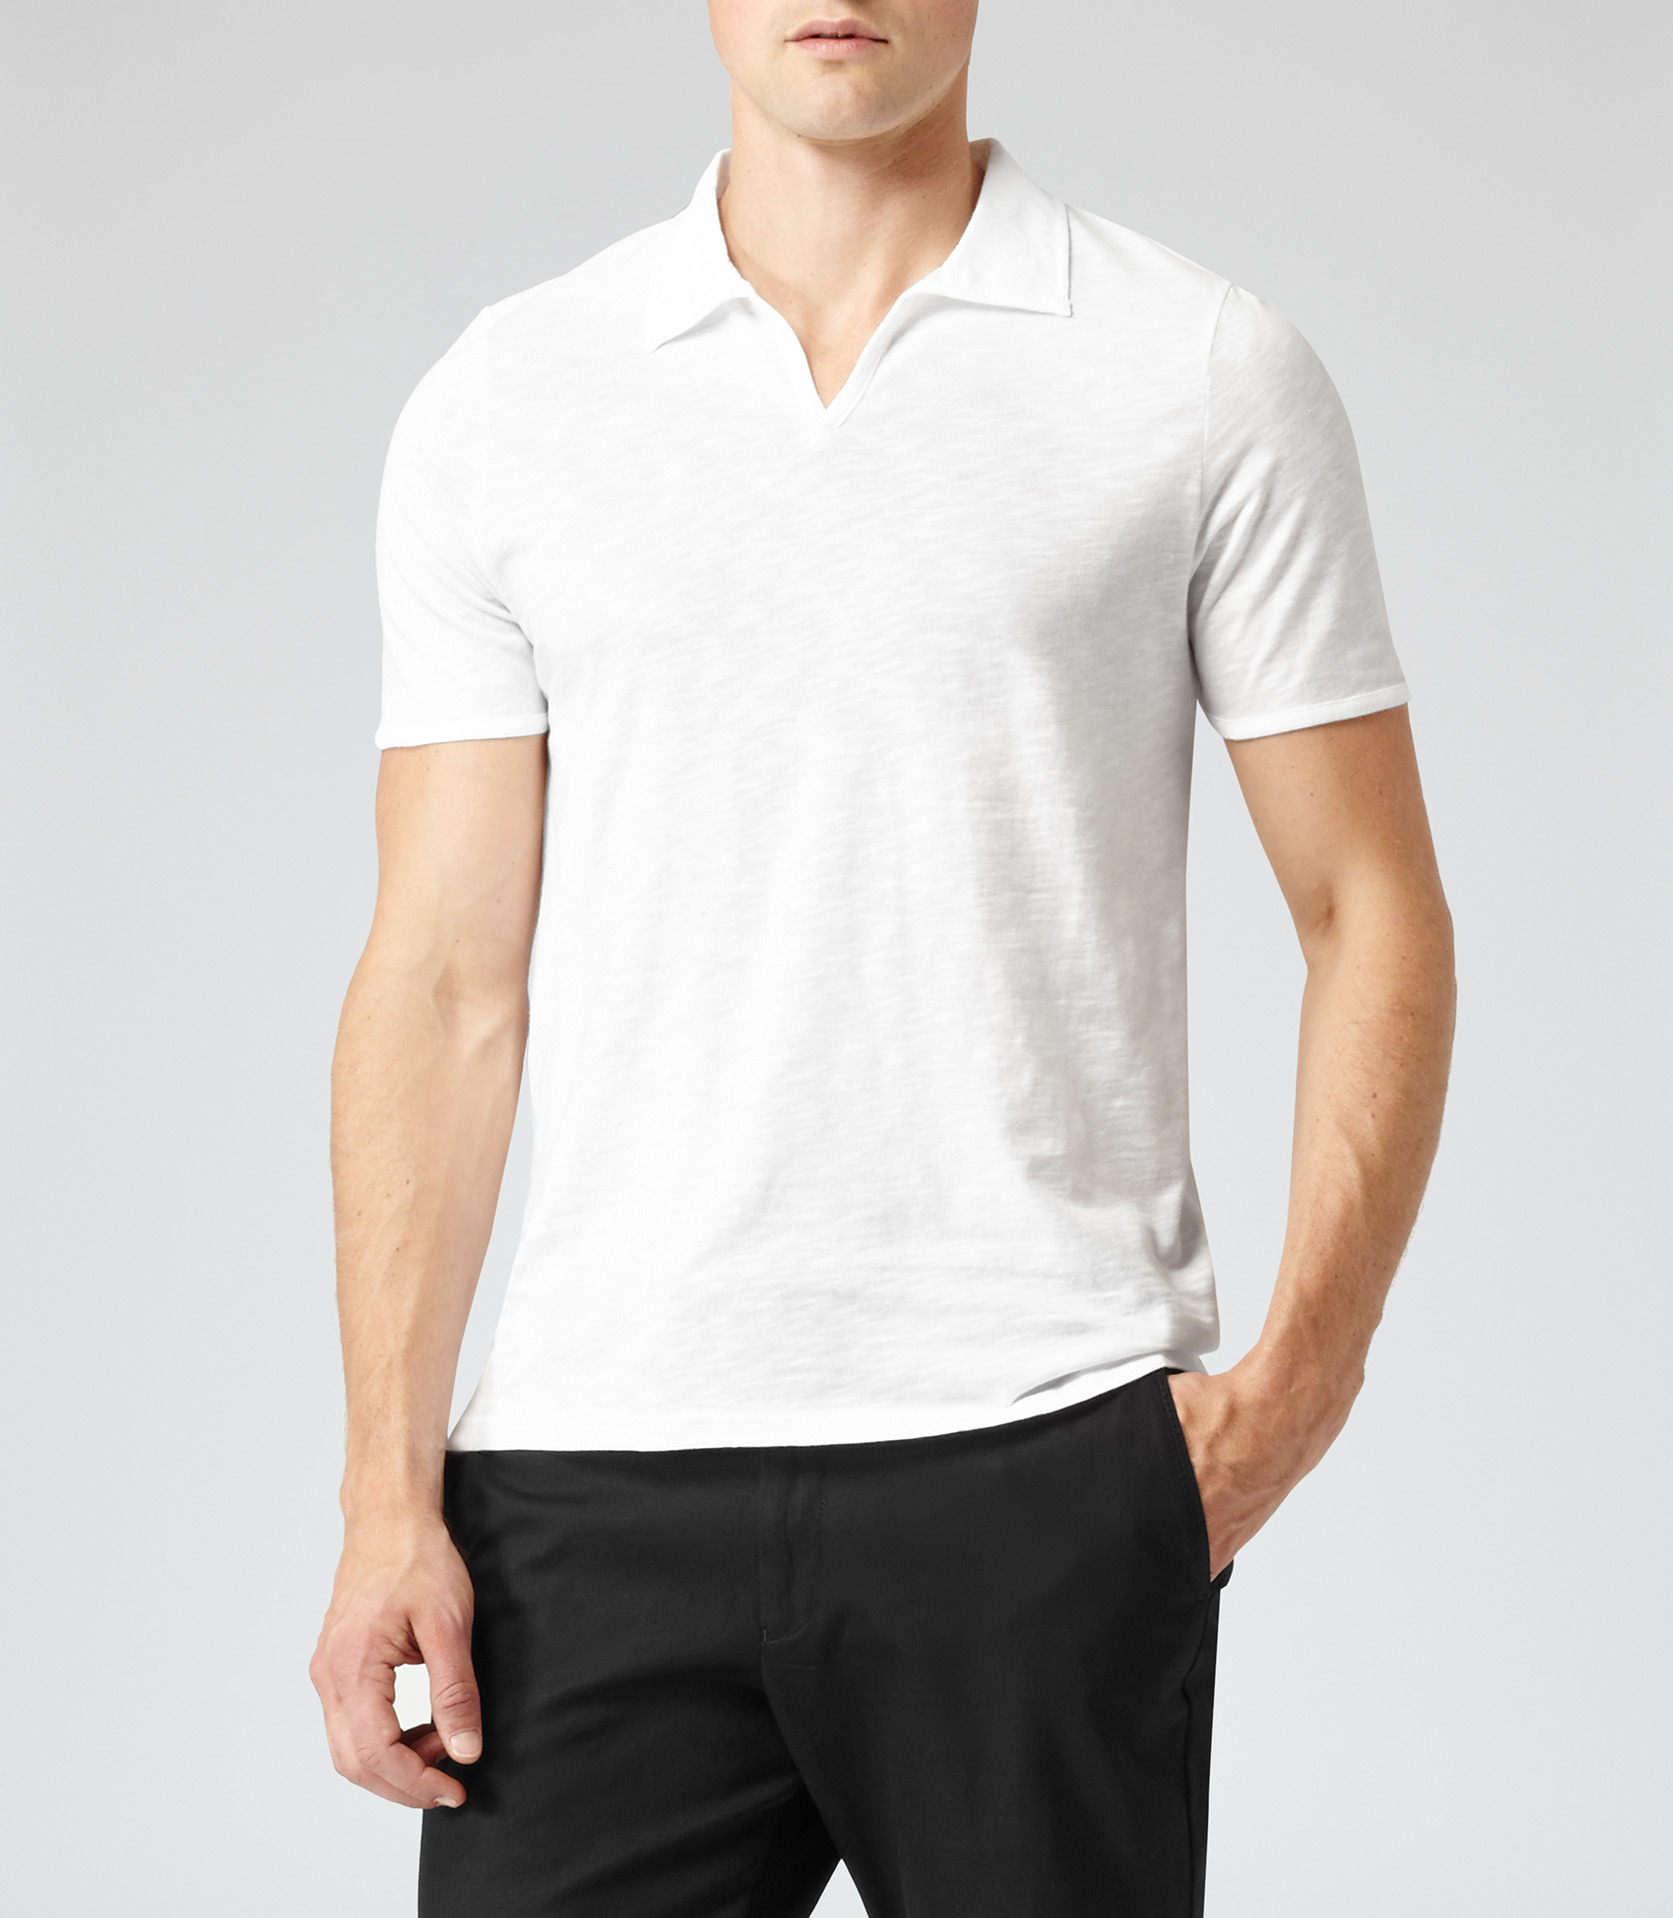 Lyst - Reiss Kingsley Open Collar Polo T-Shirt in White ...